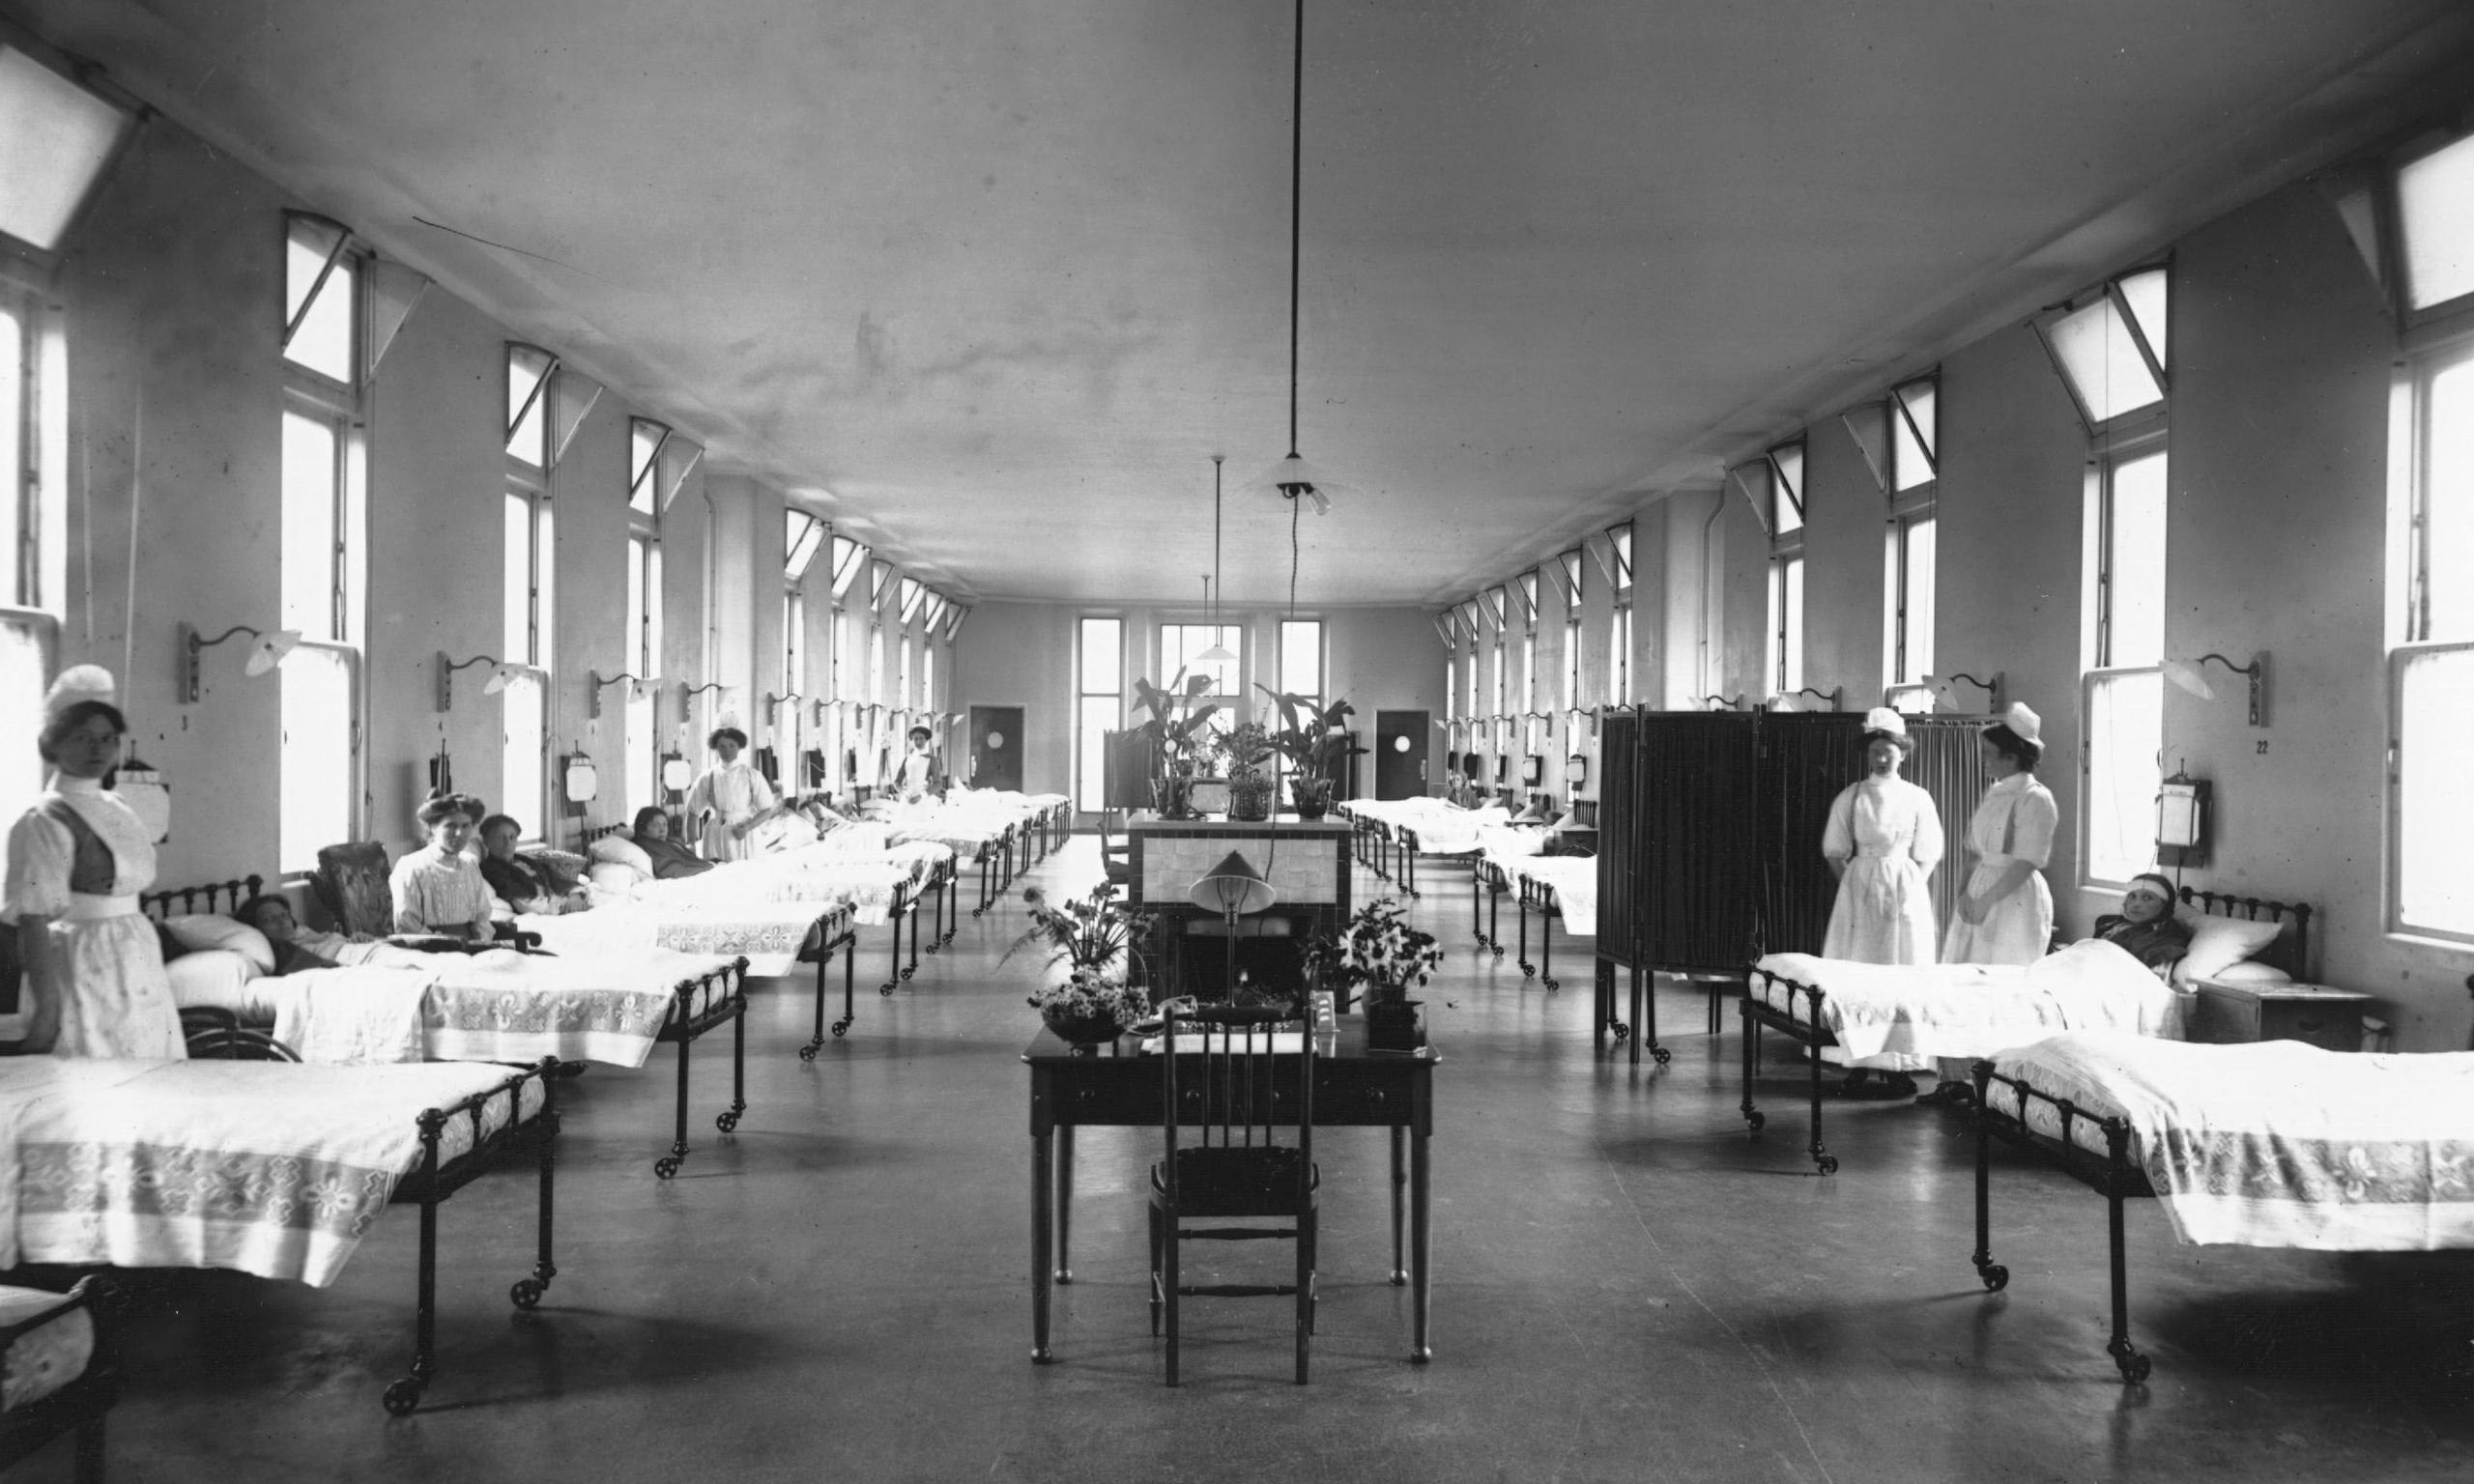 Return To Victorian Style Hospitals To Fight Superbugs